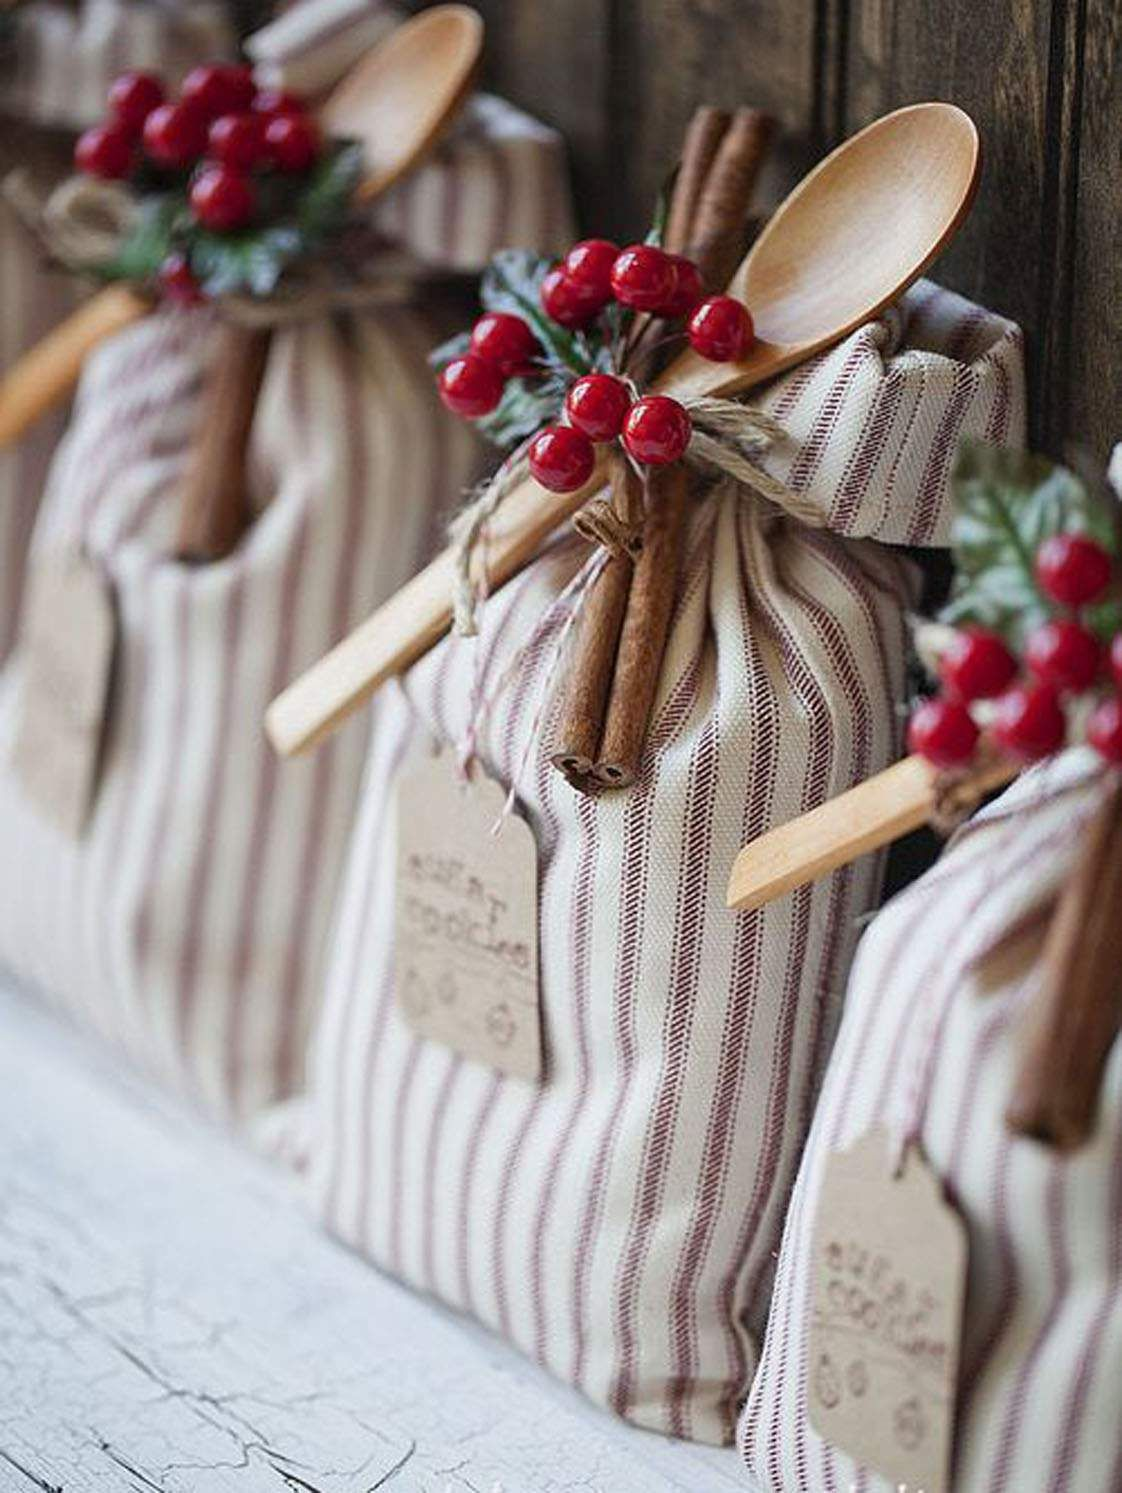 Christmas Homemade Gifts 60 Diy Christmas Gift Ideas Best Holiday Homemade Gifts To Make